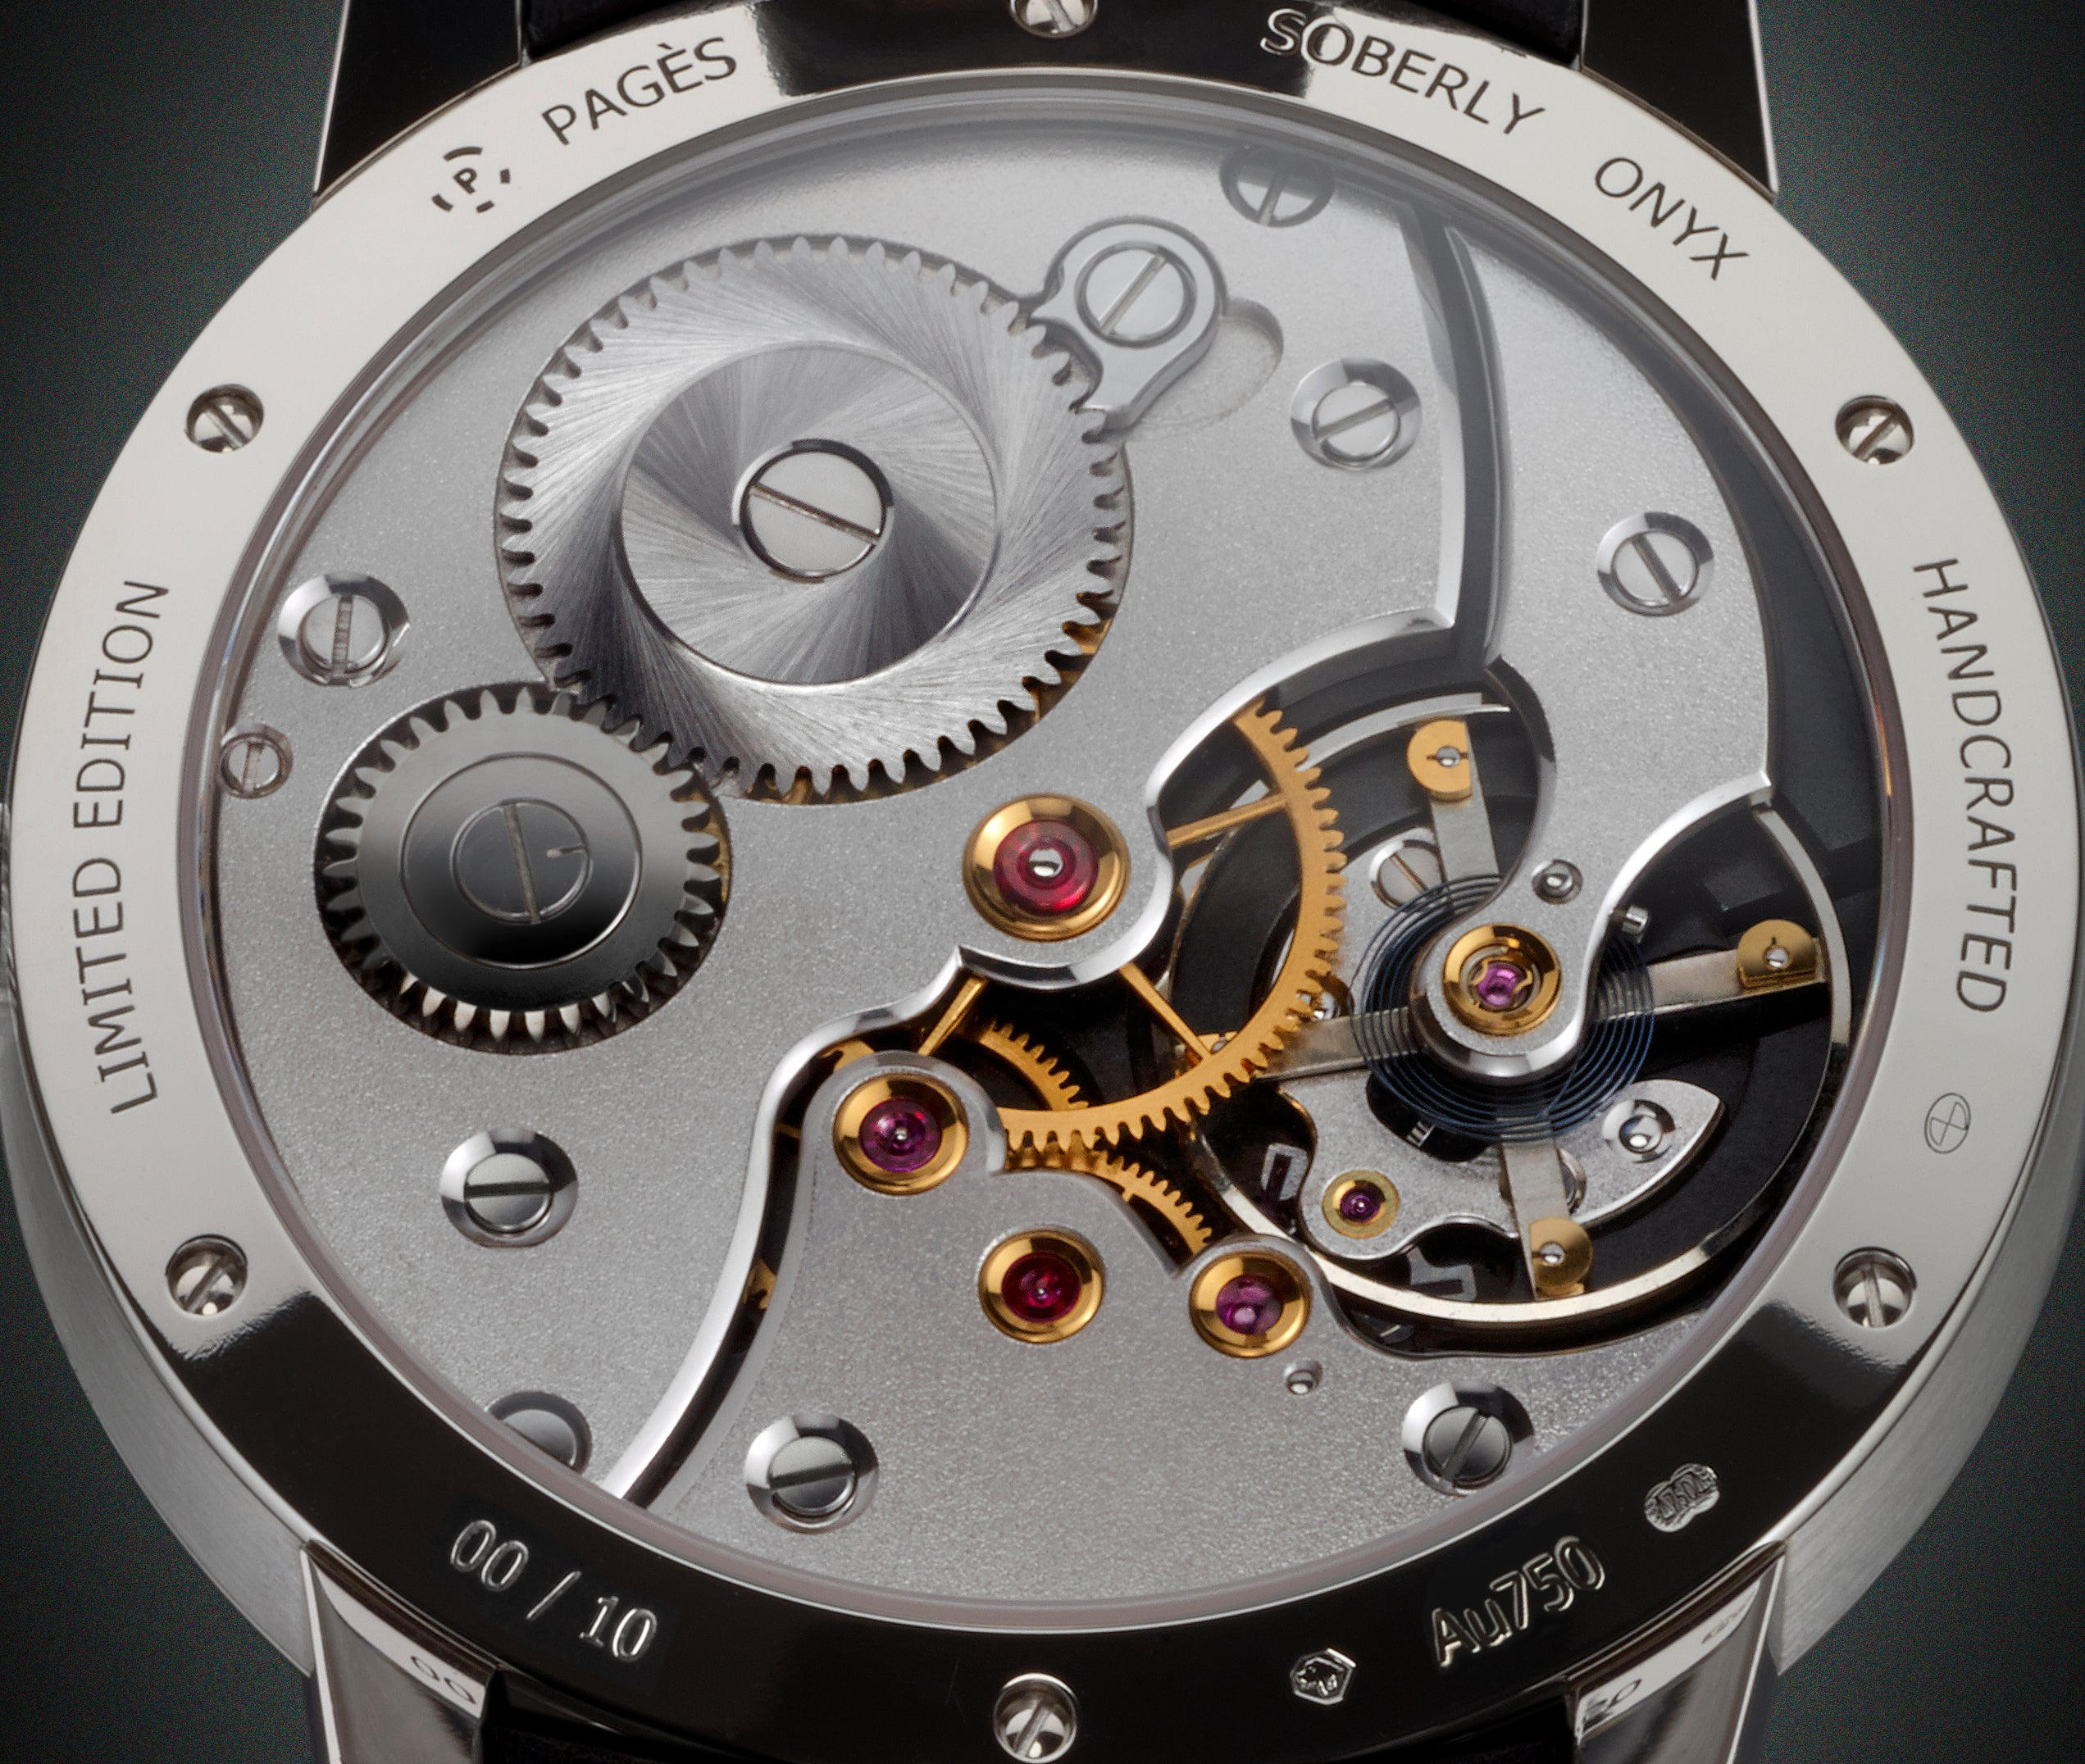 The movement of Raul Pages Soberly Onyx wristwatch for A Collected Man London